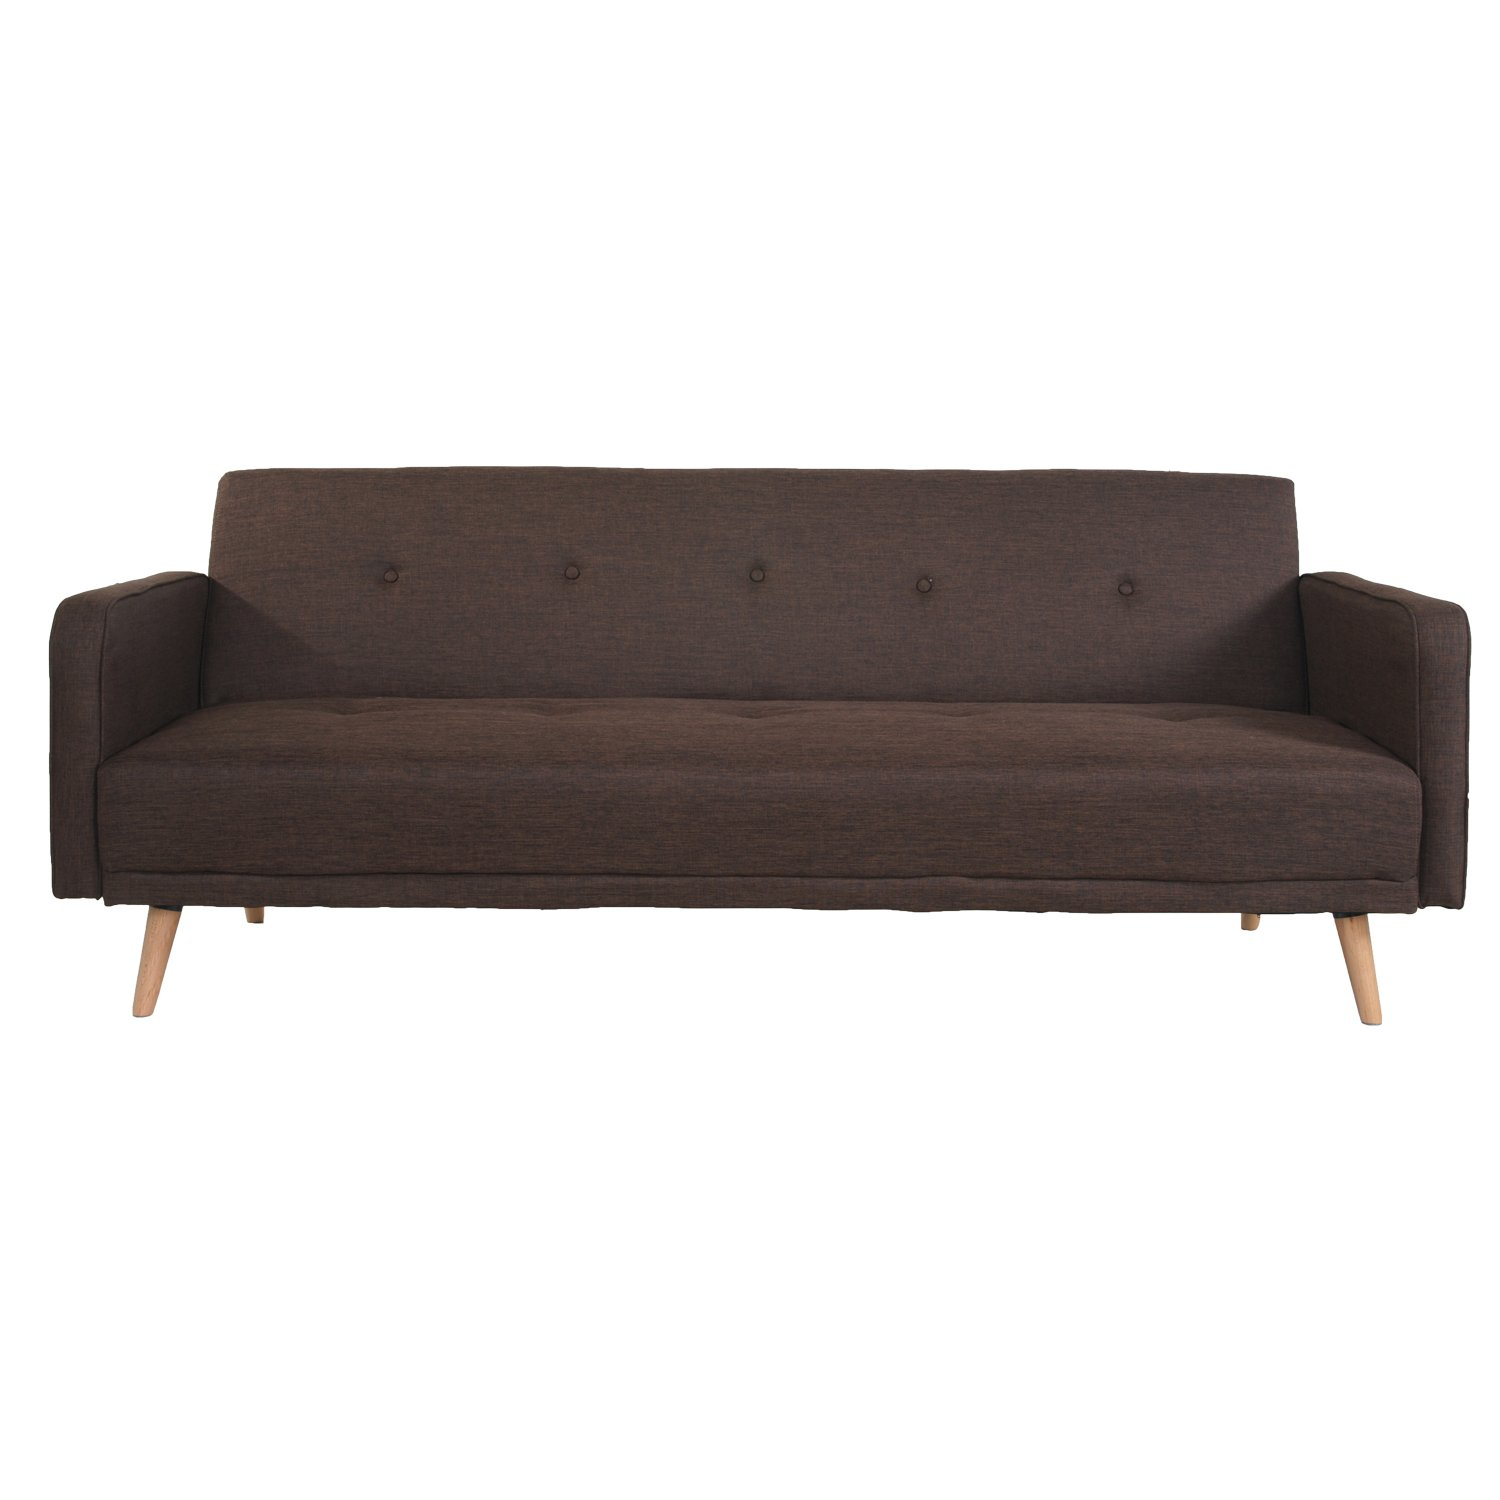 Joveco Fabric Button Tufted Sofa Bed with Wood Legs